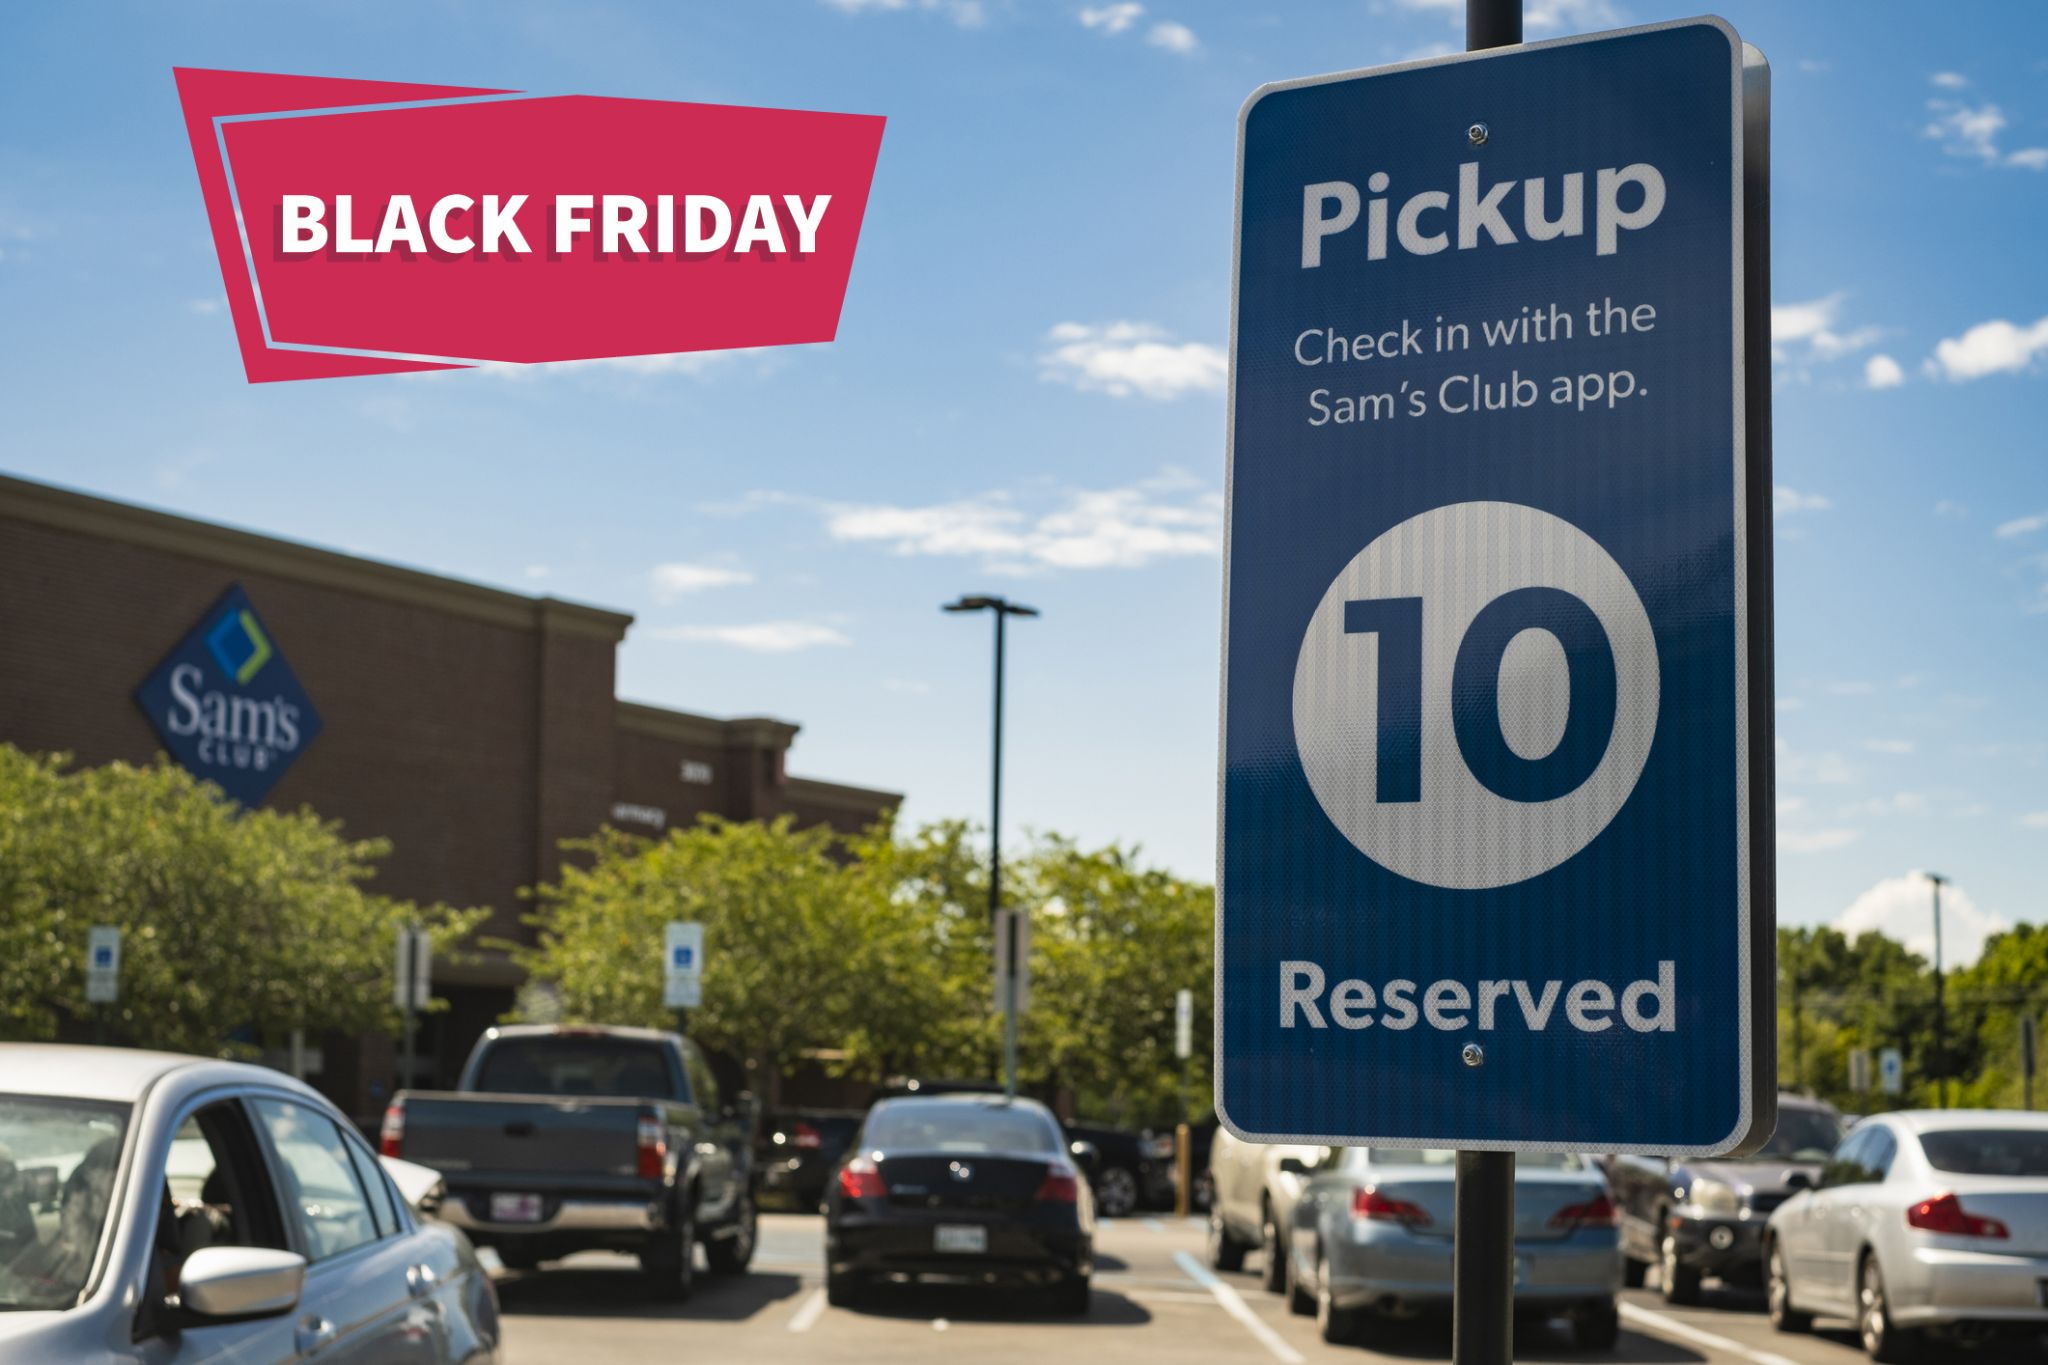 Shop Black Friday deals safely with curbside pickup at Sam's Club.